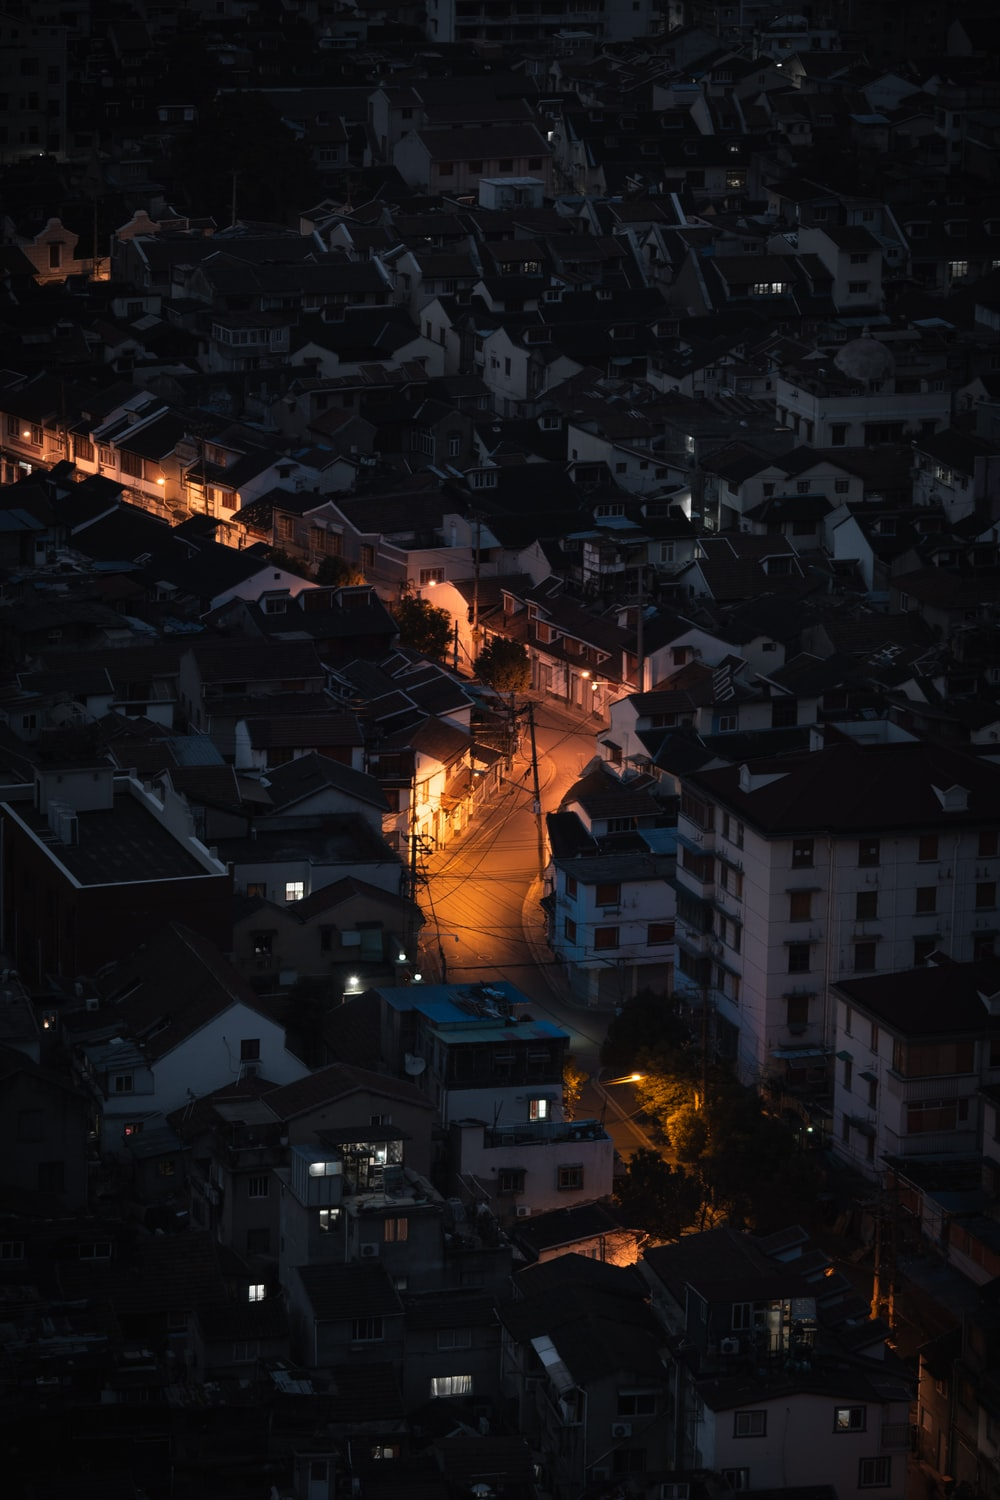 burning building during night time